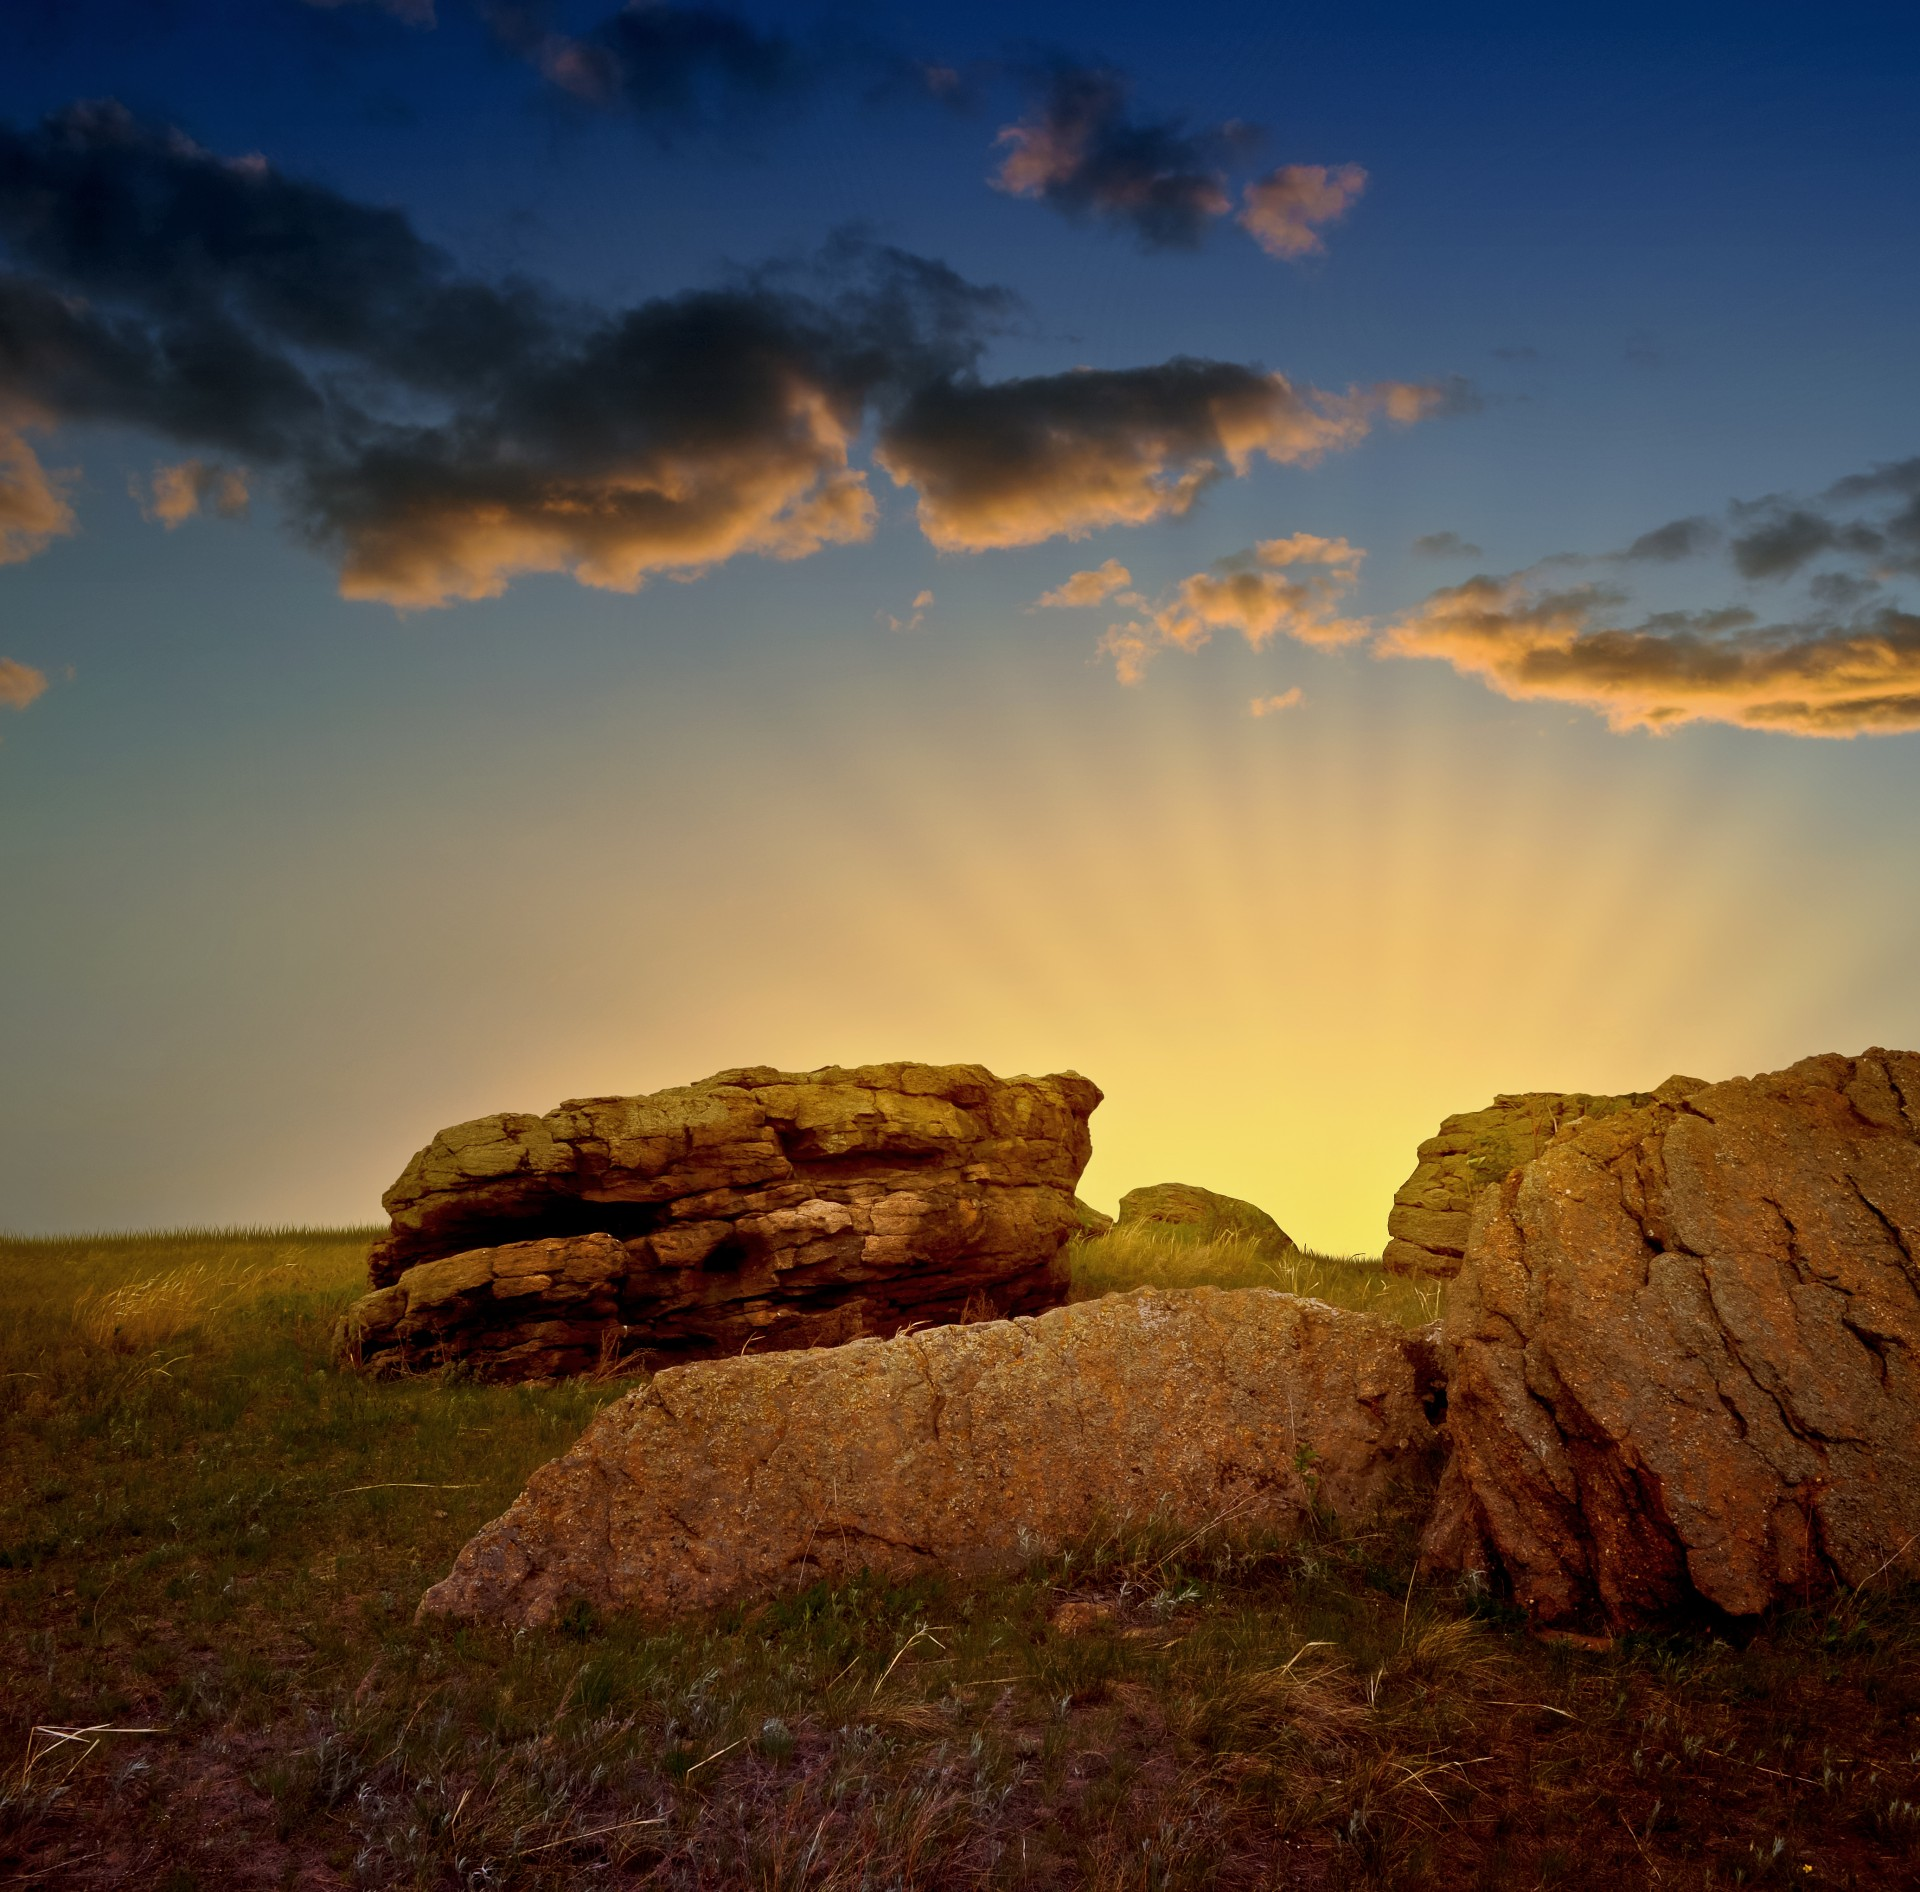 Sea Sunset Wallpaper Hd Rocks At Sunset Free Stock Photo Public Domain Pictures